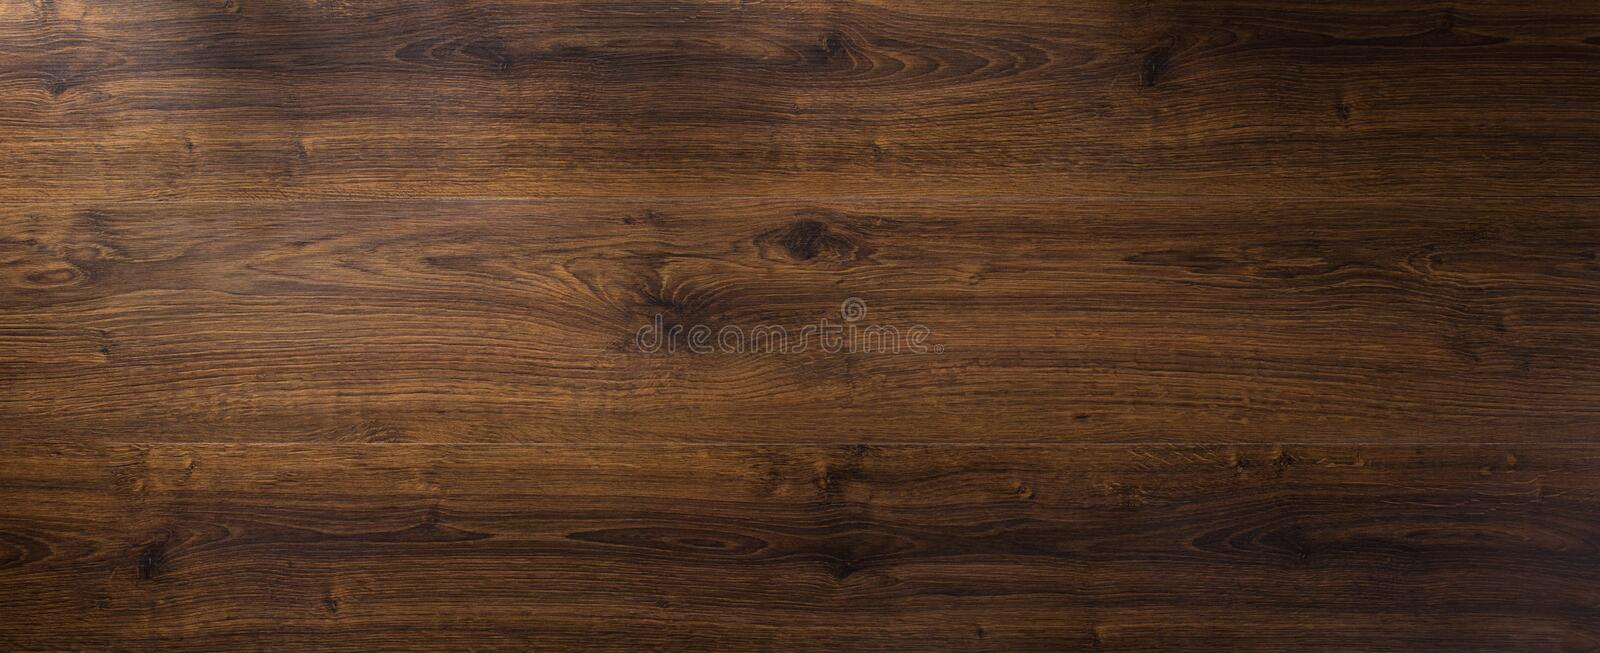 Laminate floor background texture. Laminate floor panoramic wooden background texture royalty free stock photography